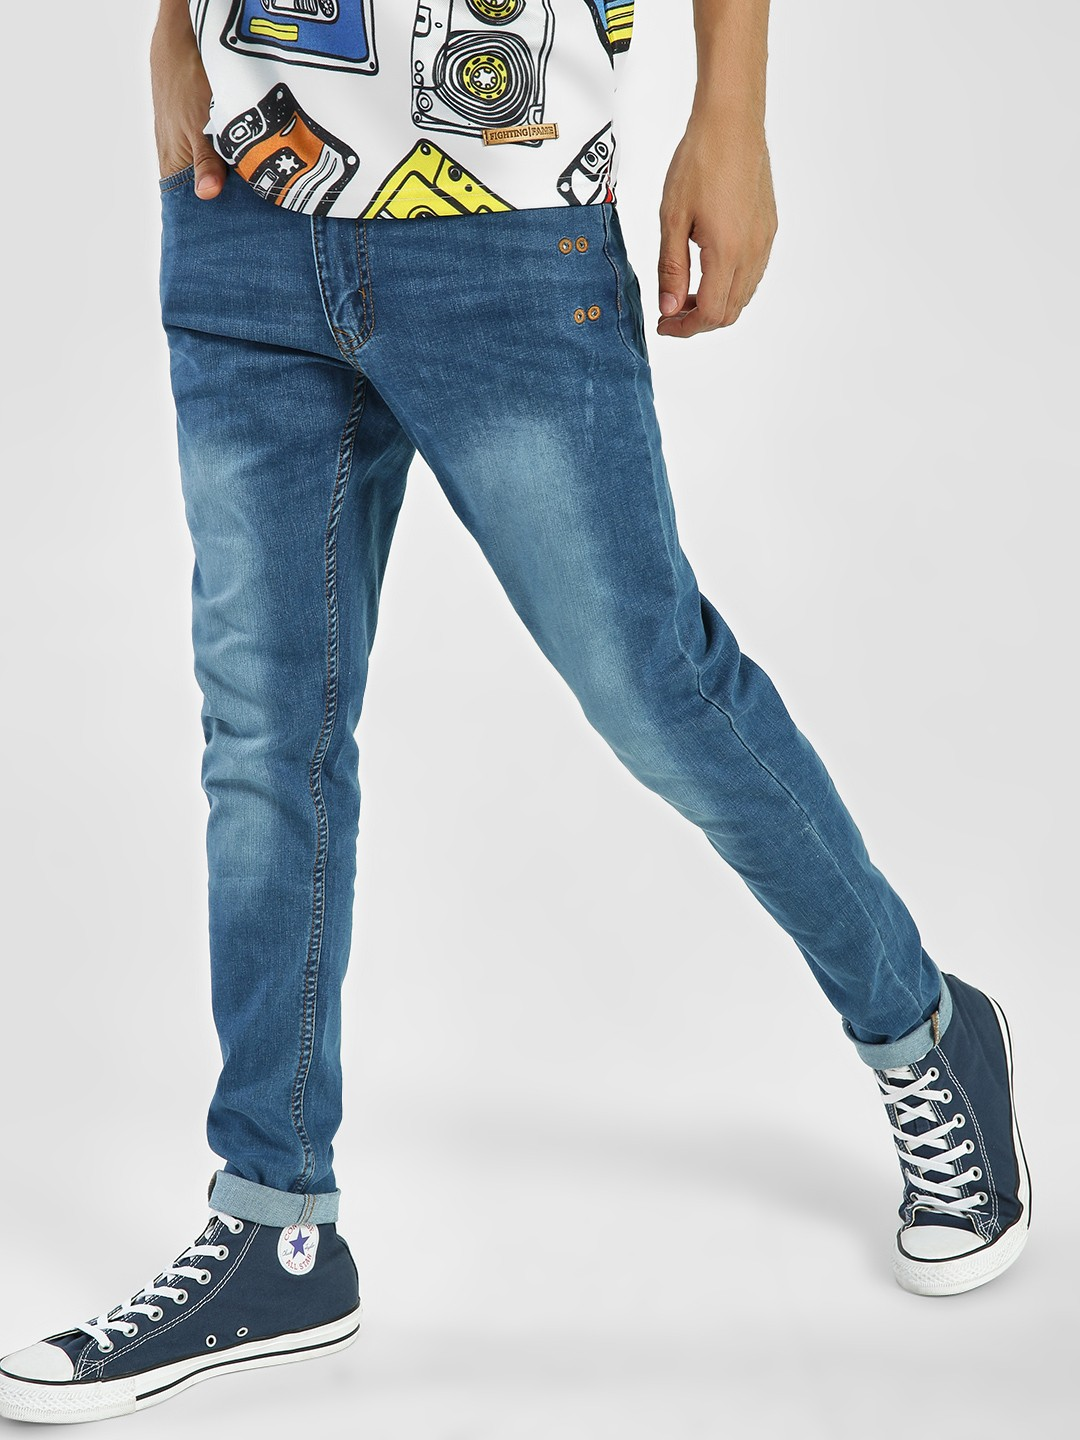 Kultprit Blue Light Wash Slim Jeans 1